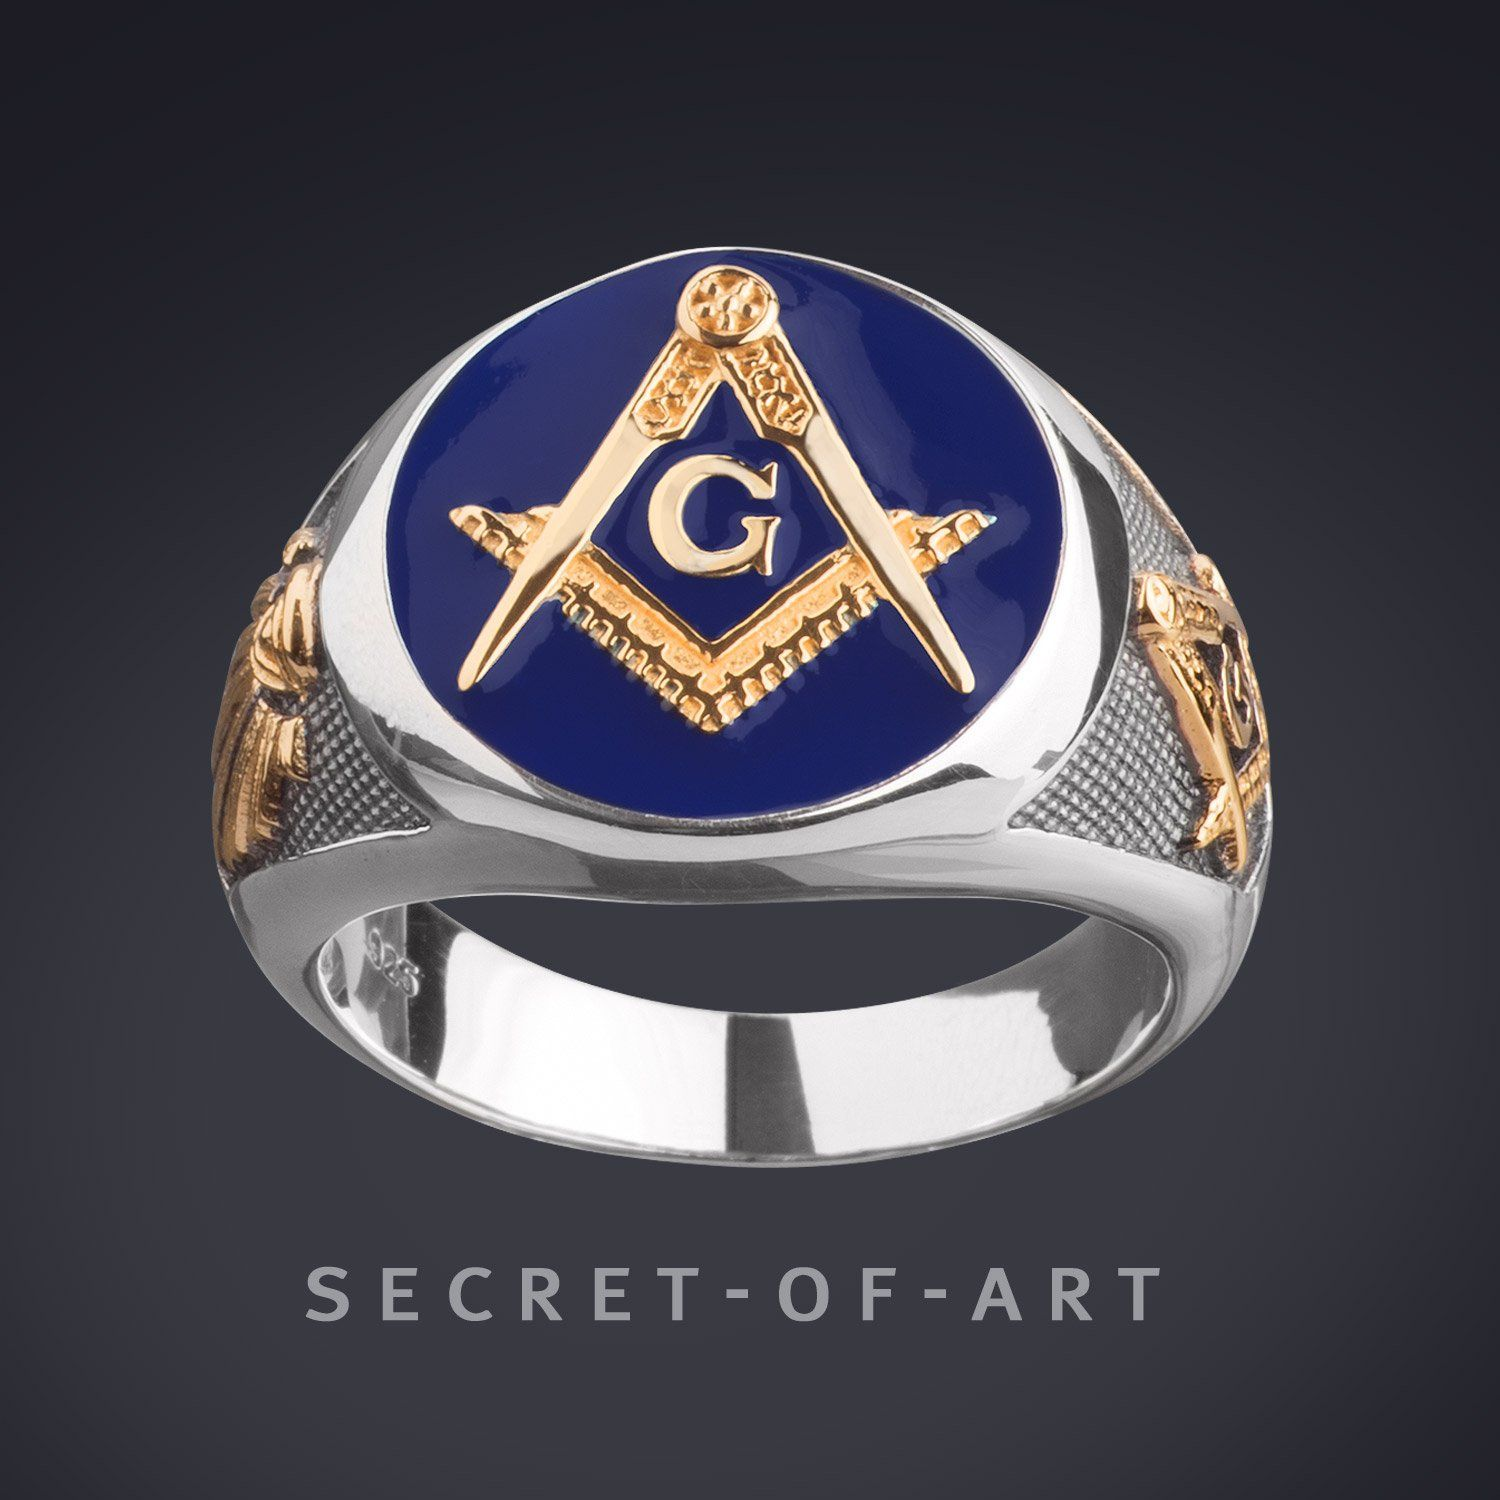 a888000505851 Masonic Ring Blue Lodge 925 Silver with 24K-Gold-Plated Parts and ...